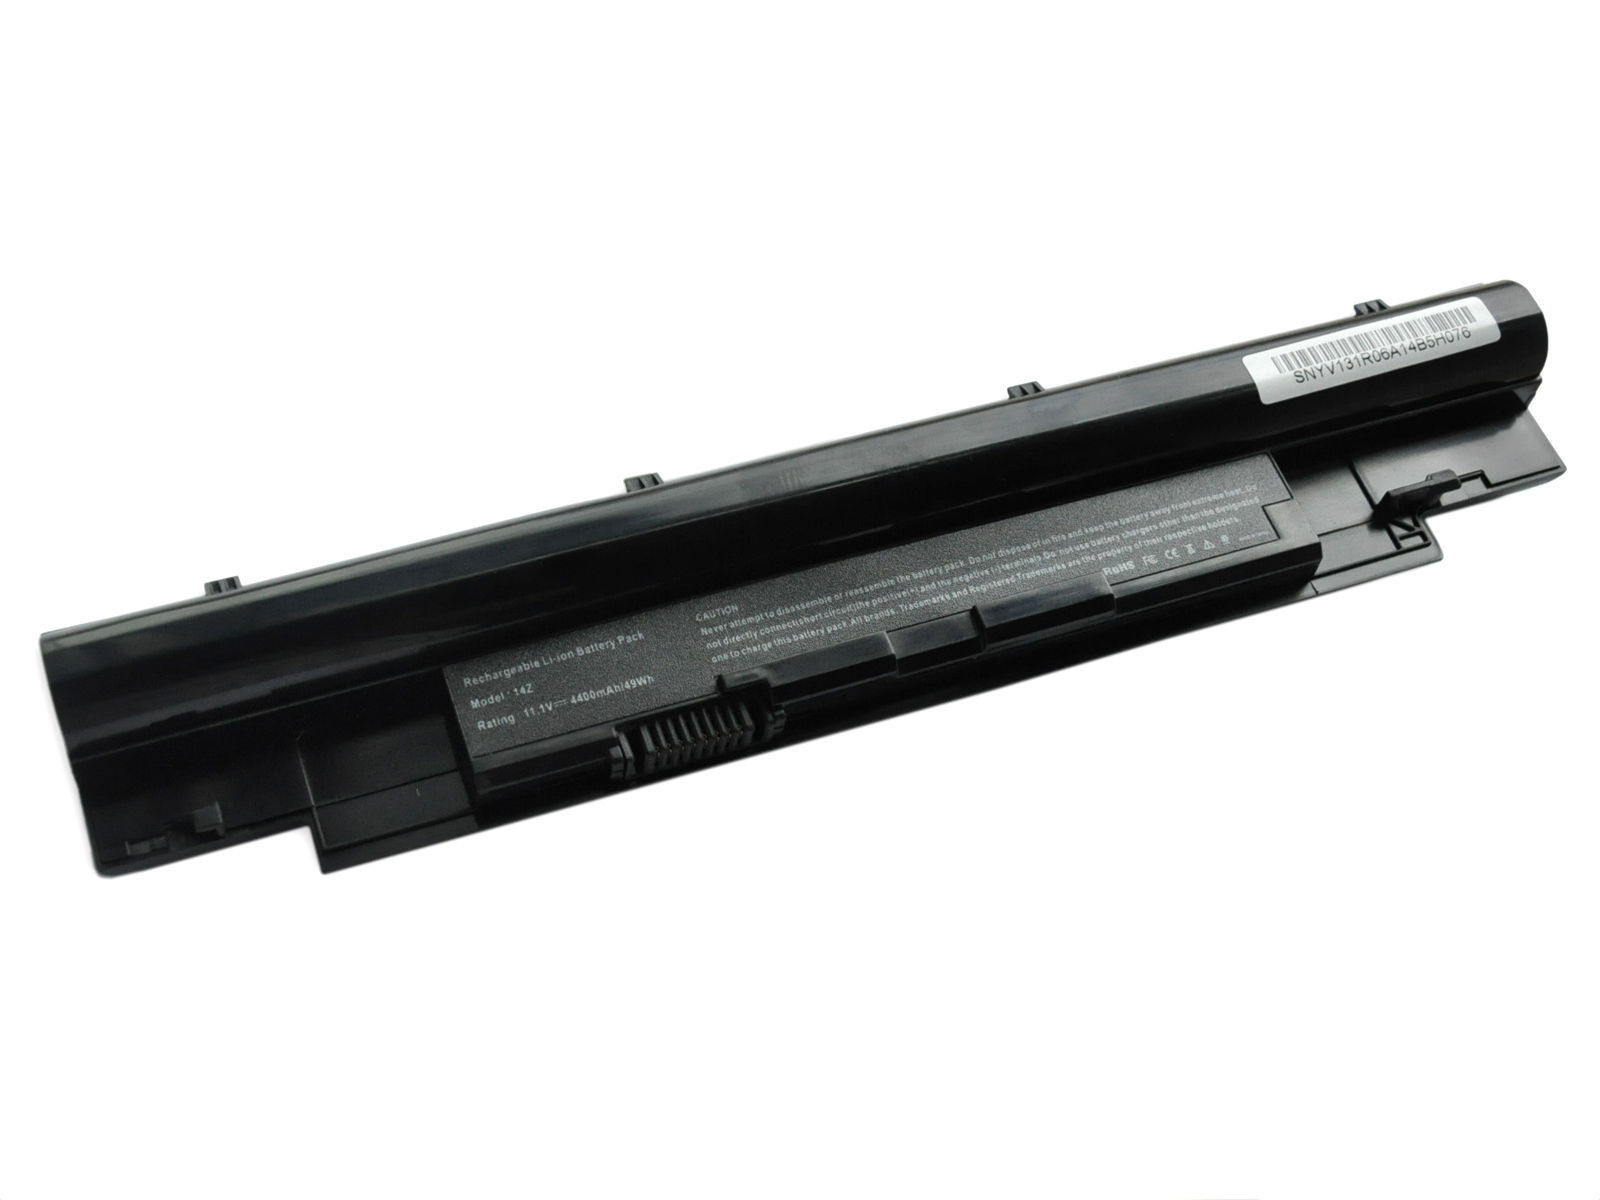 Replacement Dell 312-1257 Battery